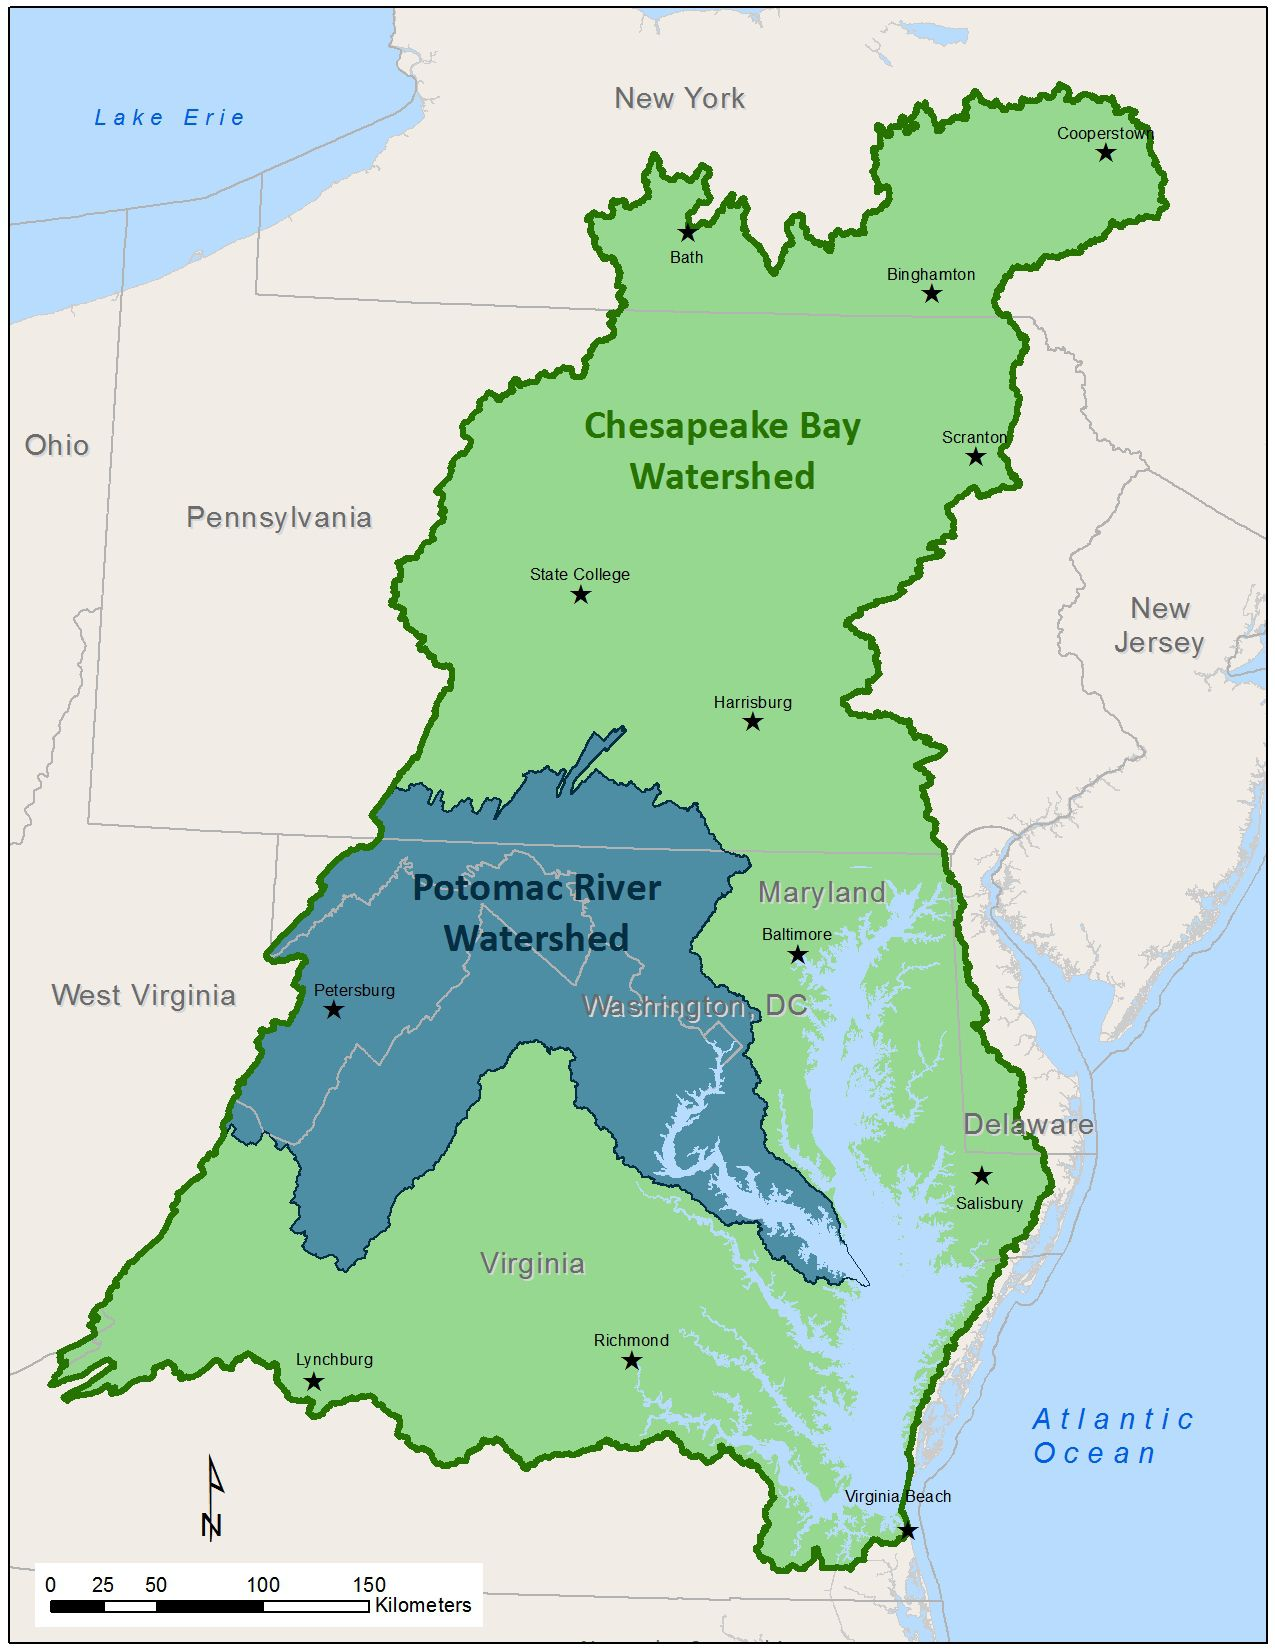 Maps Of The Chesapeake Bay Rivers And Access Points - West virginia rivers map